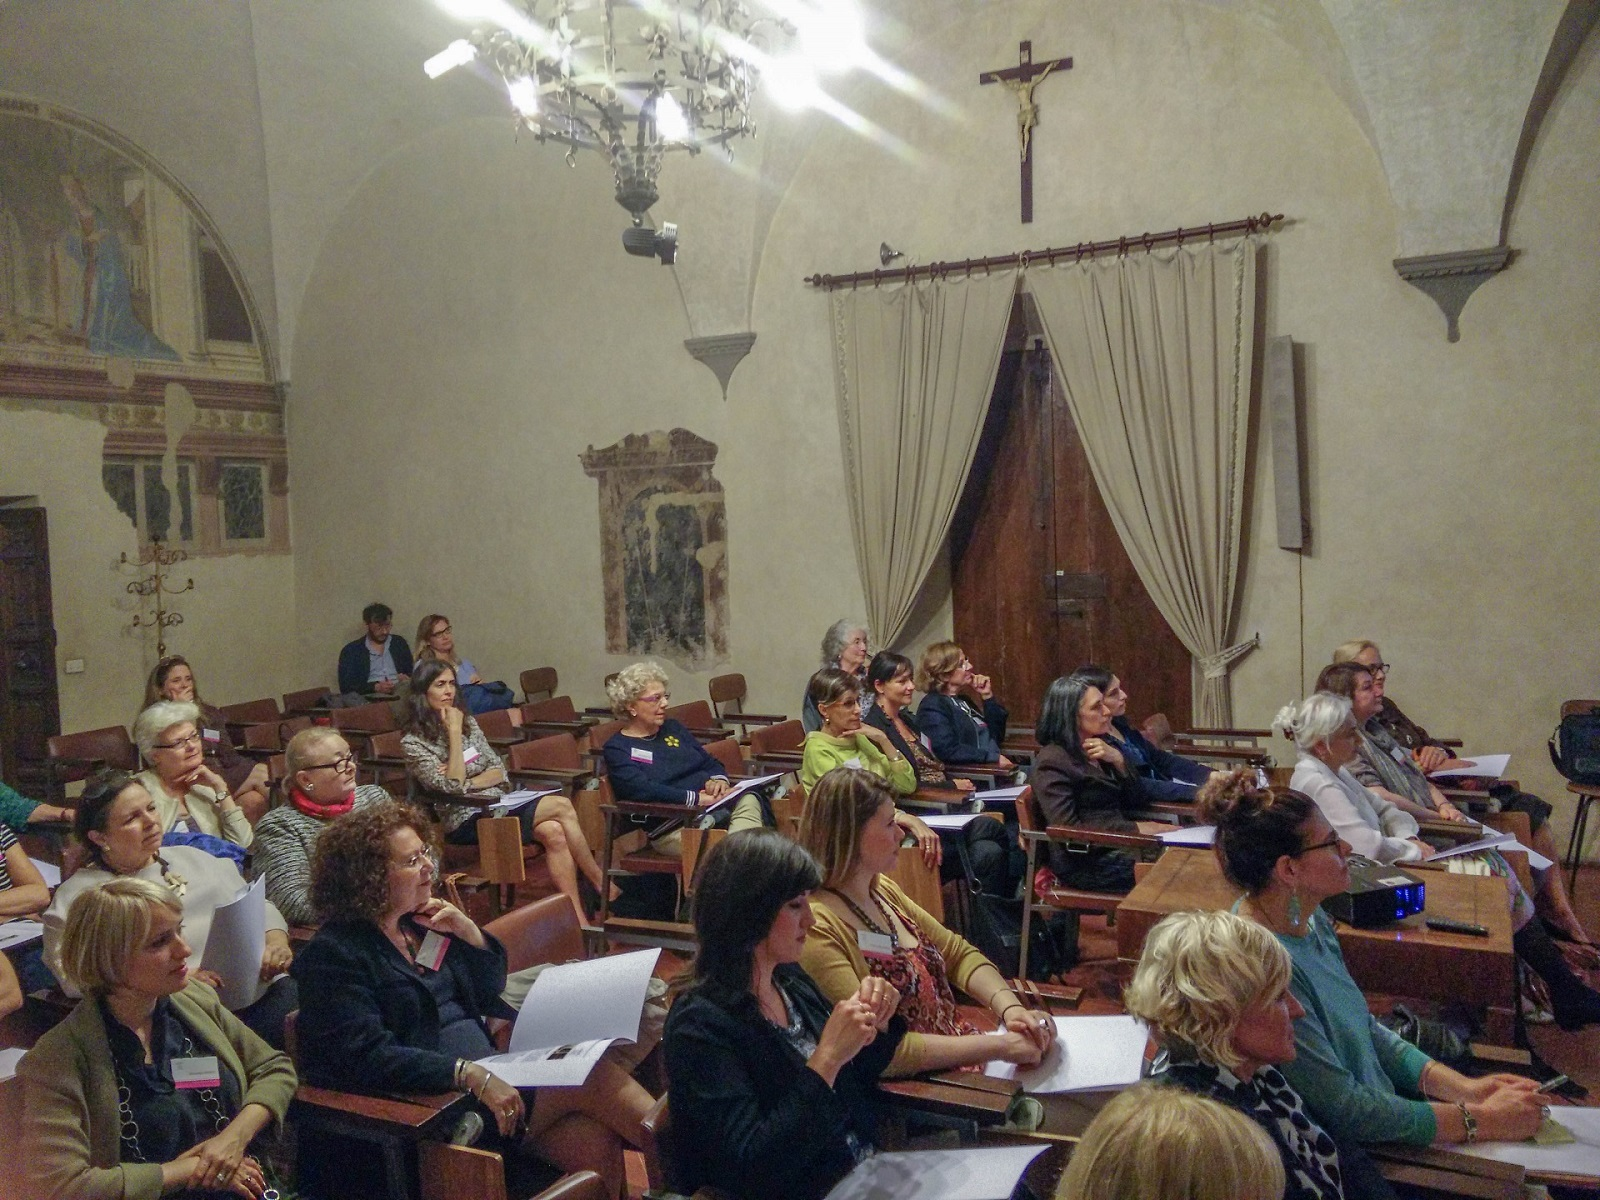 An advocacy meeting at Santissima Annunziata in Florence